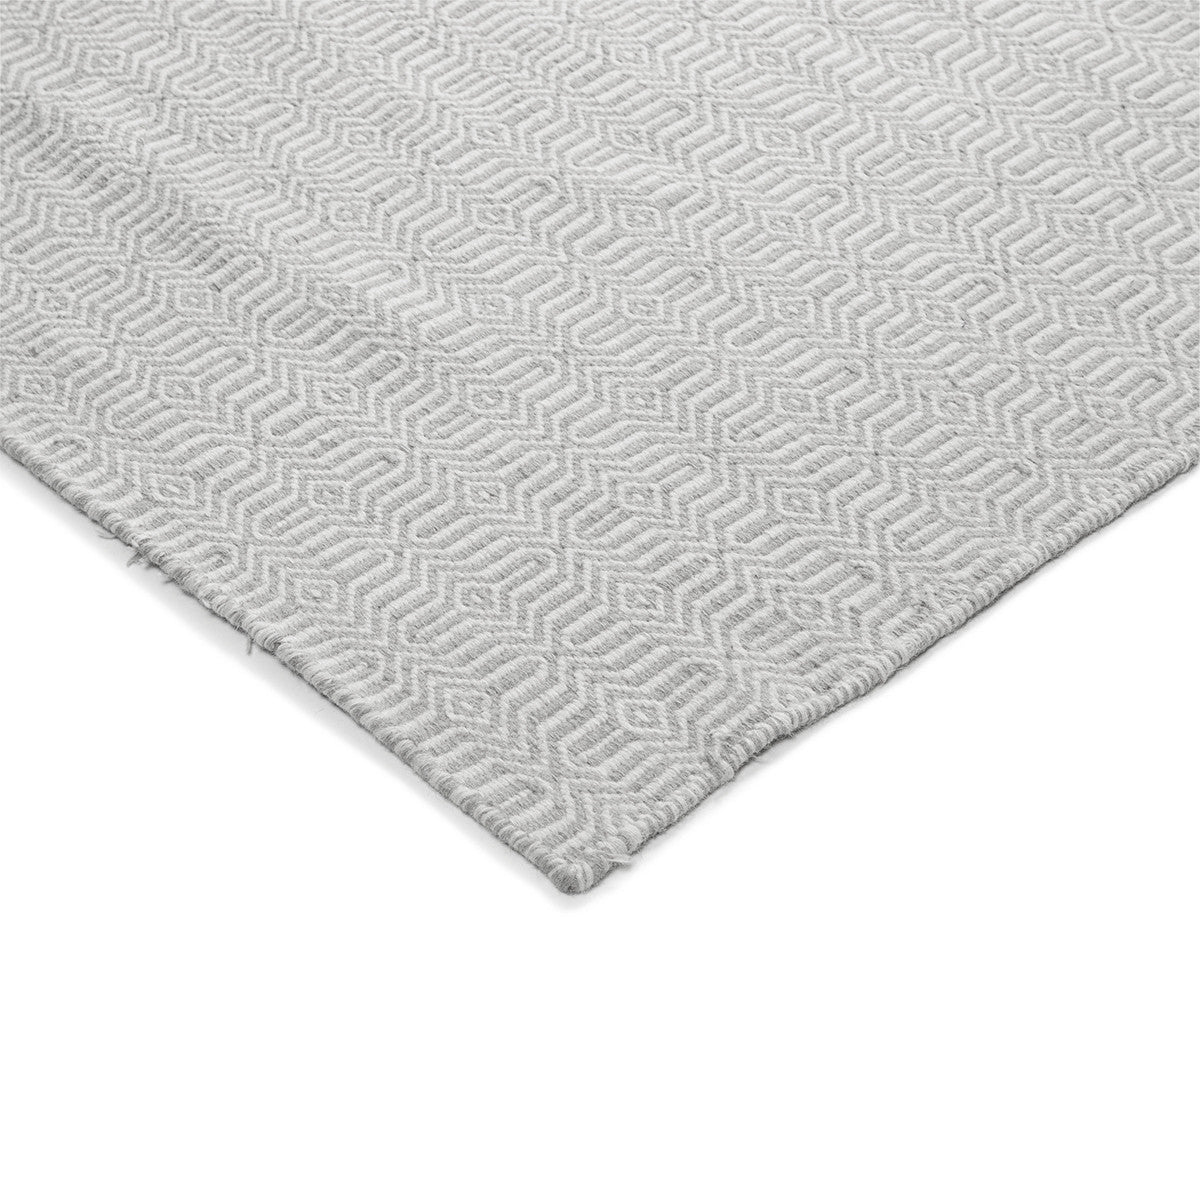 woodwaves wool weave southwest flat area rug ivory gray tan rugs products flatweave bohemian